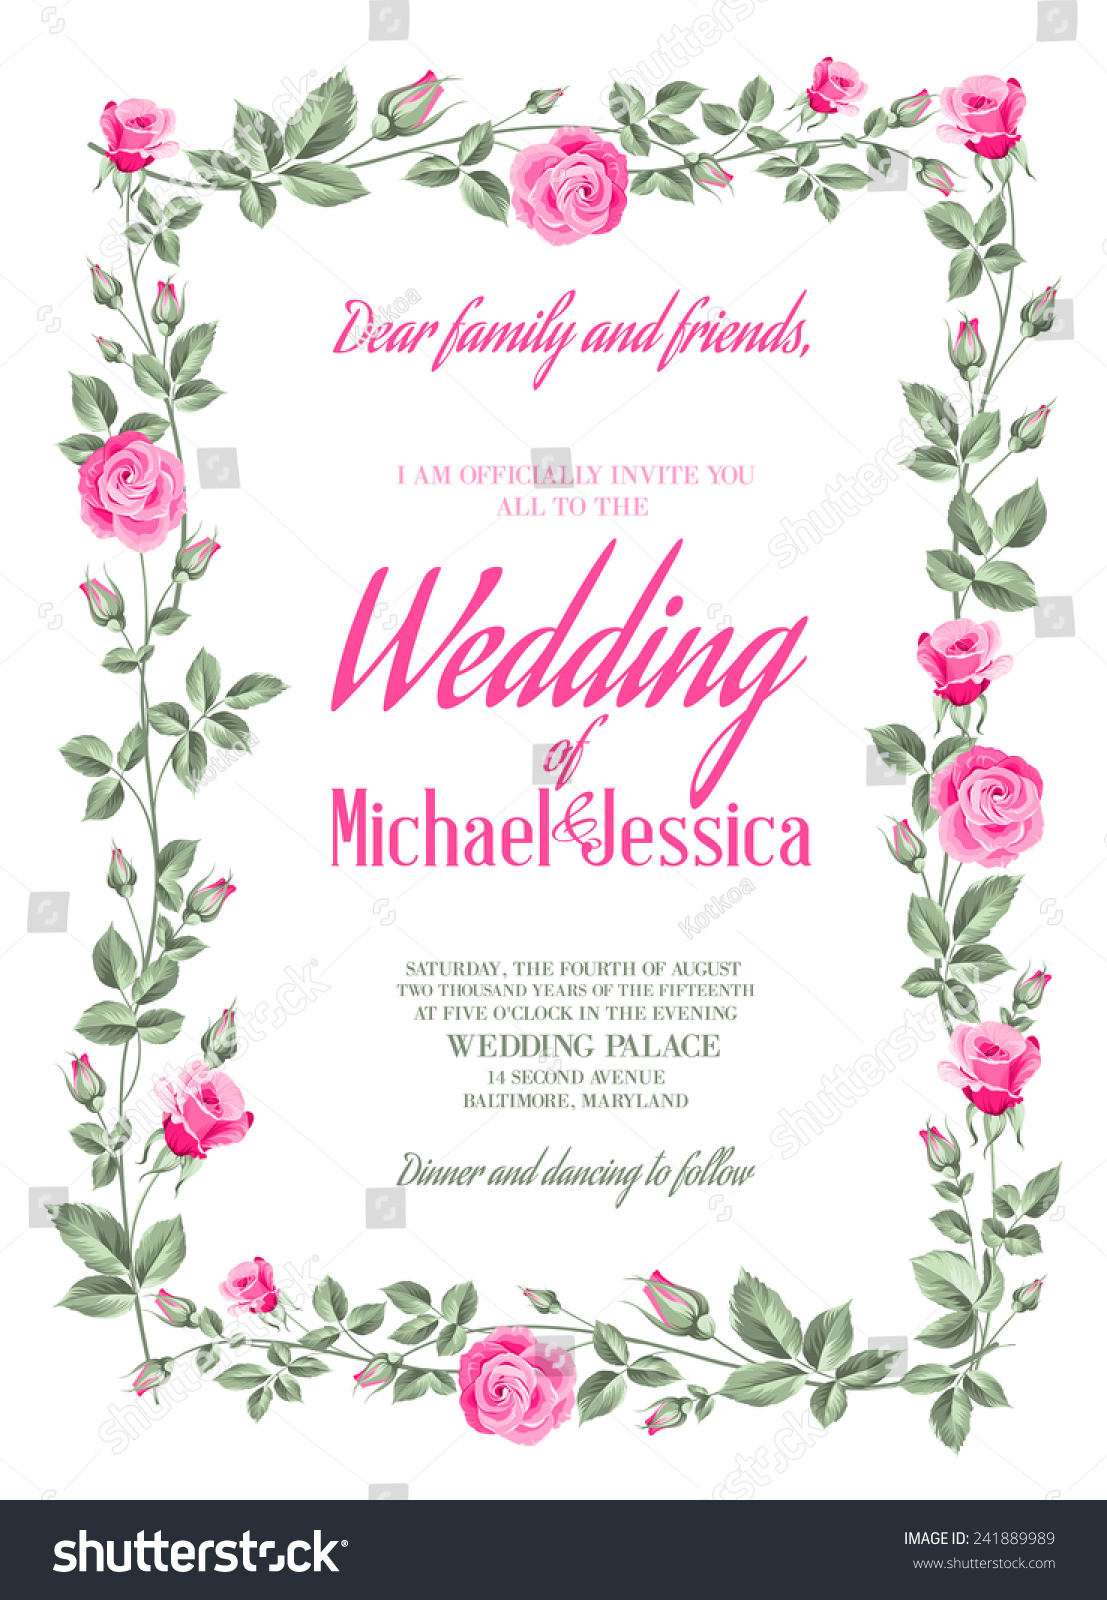 Marriage Invitation Card Custom Sign Flower Stock Vector (Royalty ...